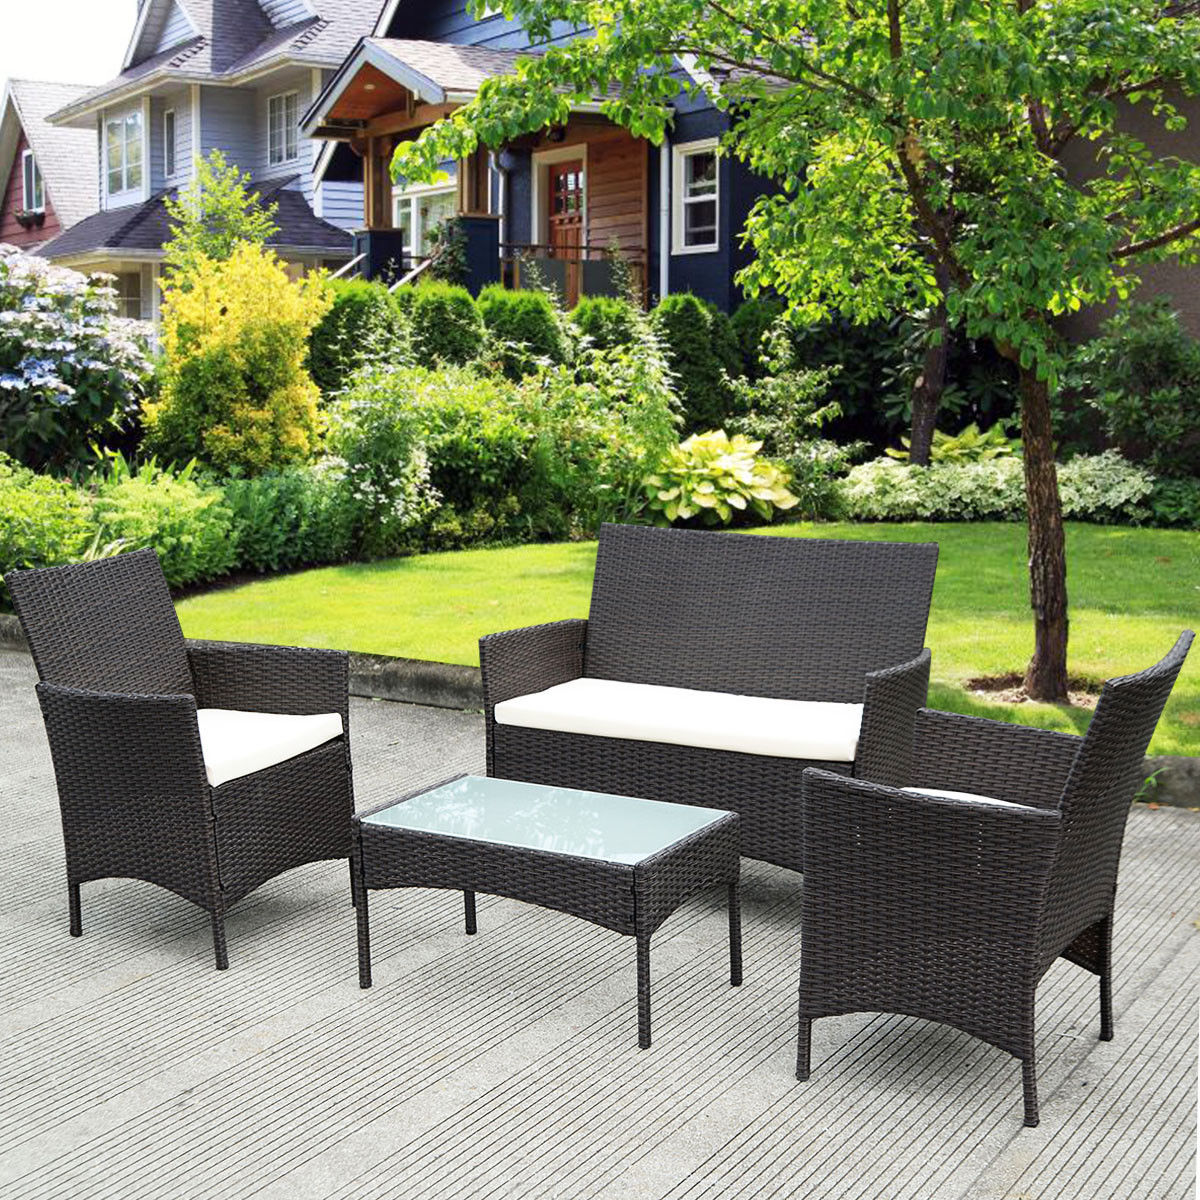 Costway 4 Pc Patio Rattan Wicker Chair Sofa Table Set